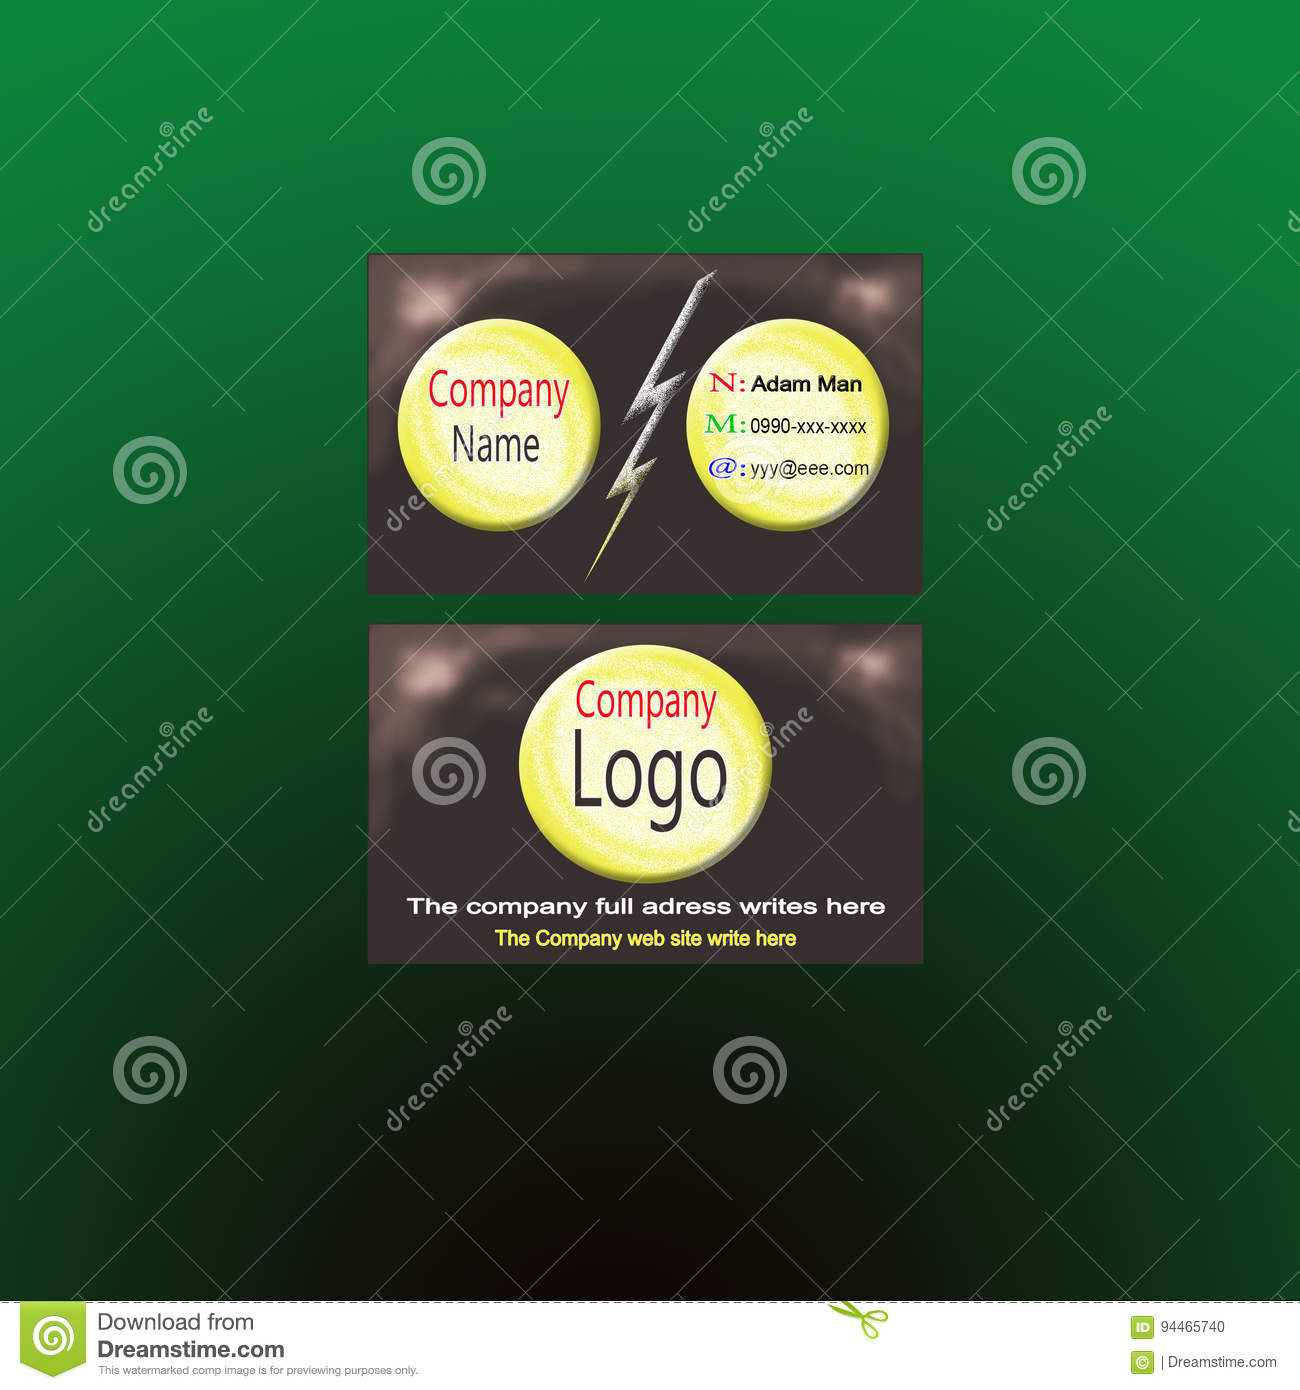 Business Card Three Circle Stock Vector Illustration Of Information